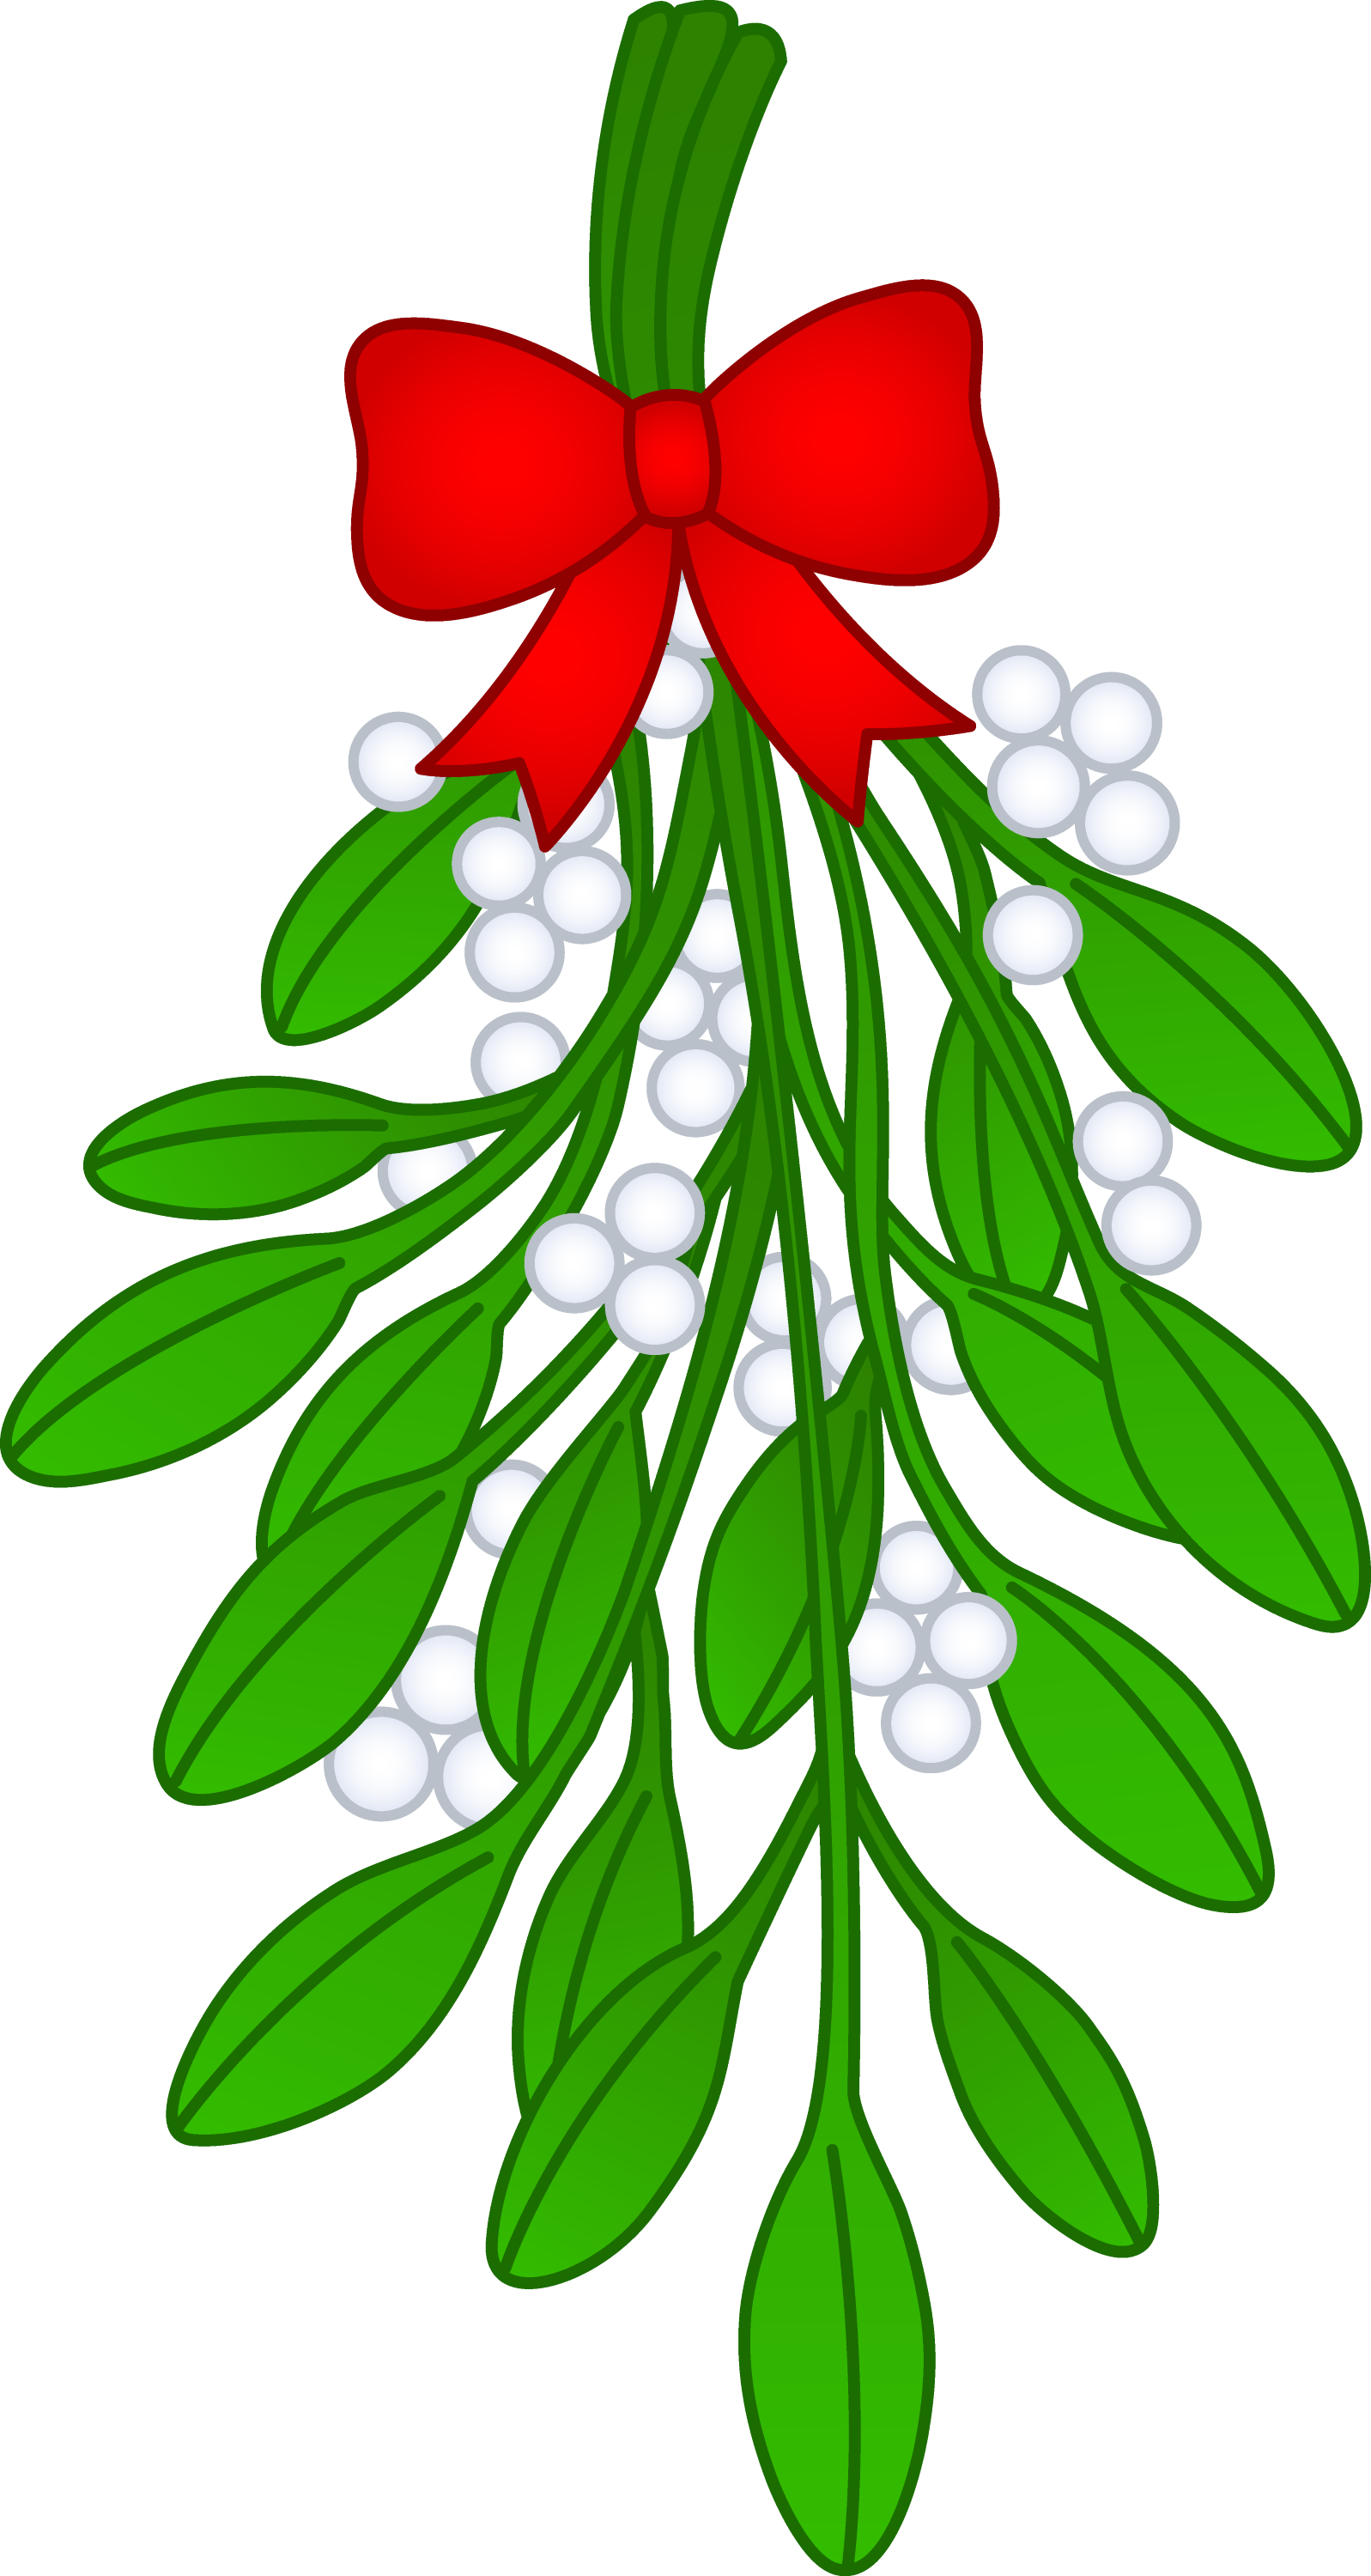 Christmas Mistletoe With Red Bow - Free Clip Art